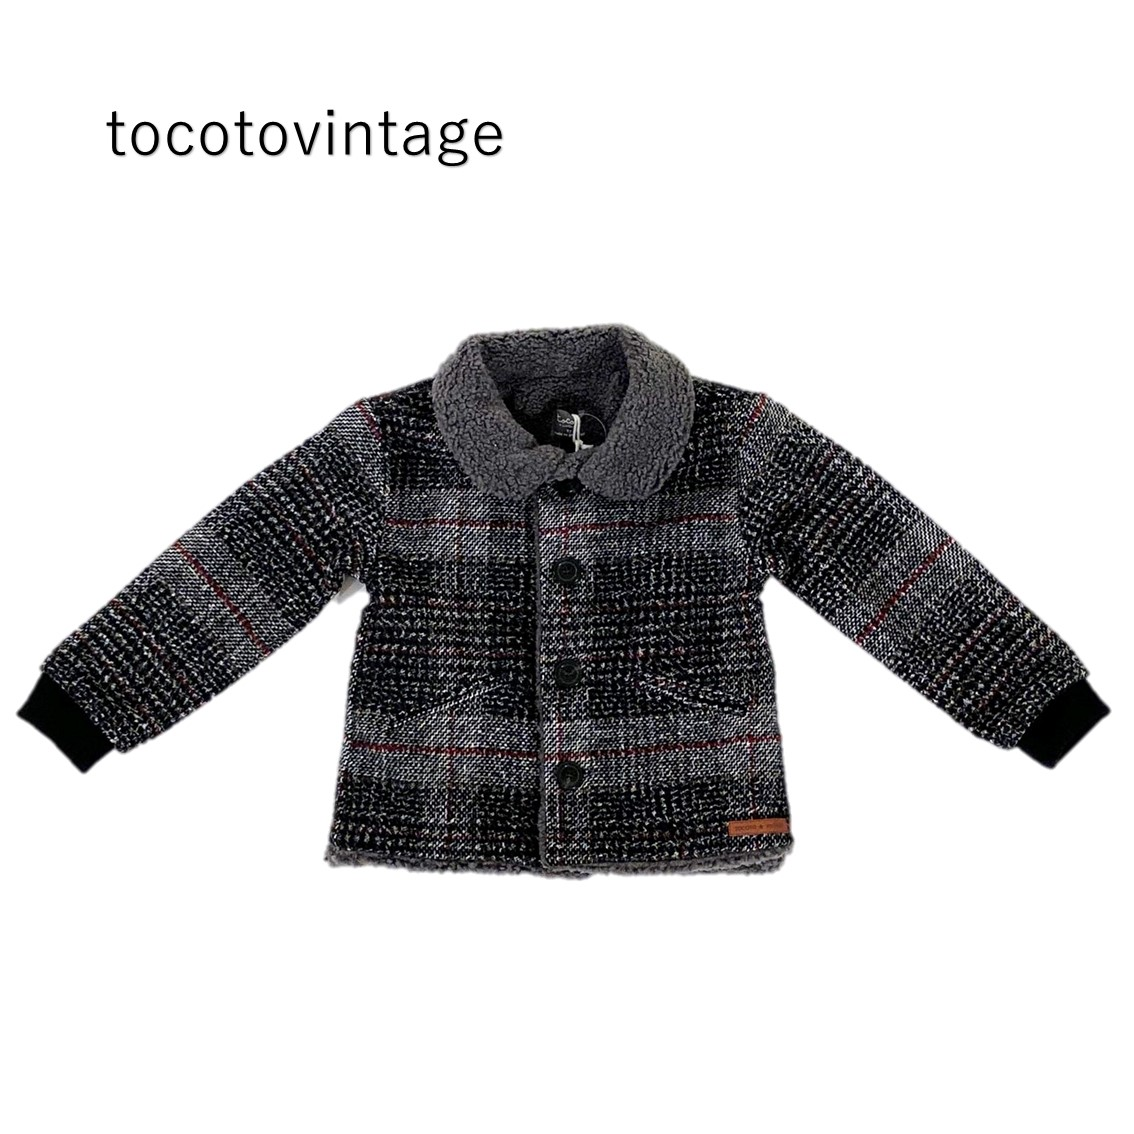 20AW tocotovintage W60920 Oversize plaid baby coatwith sheepskin lapel